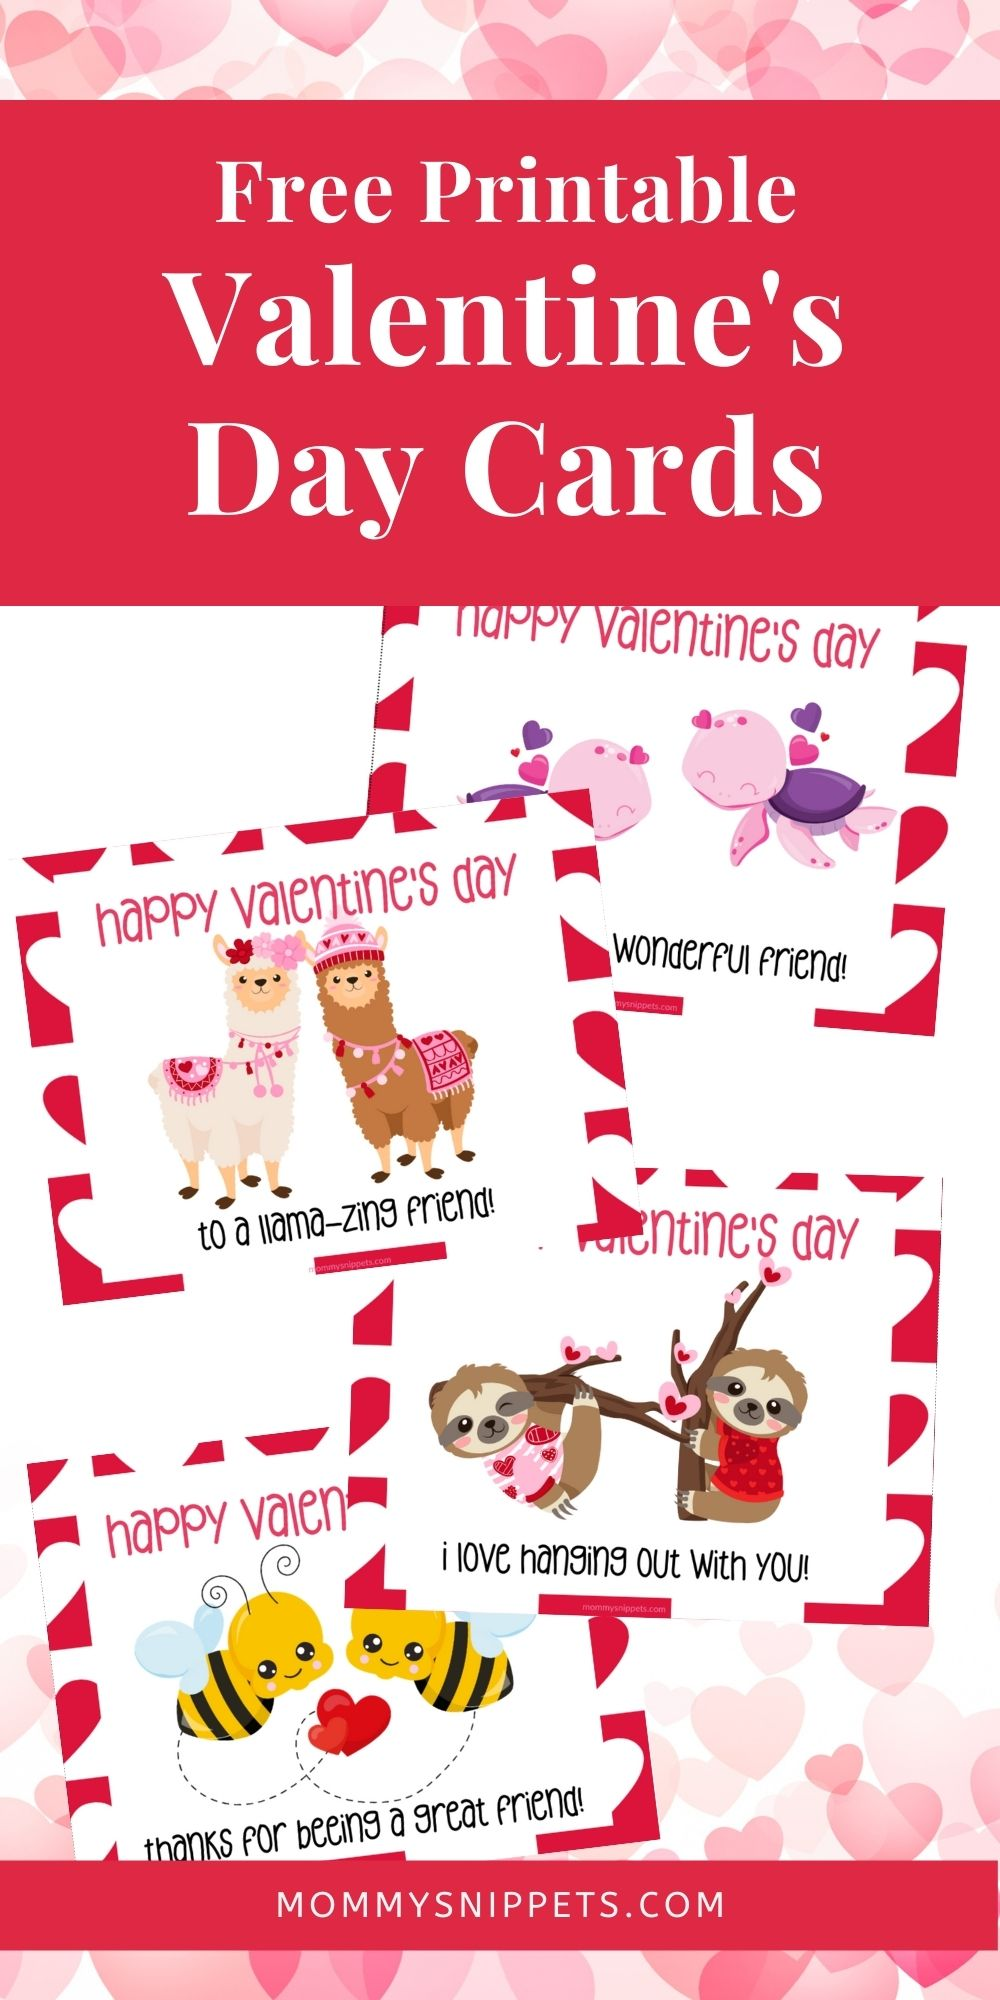 Free Printable Valentine's Day Cards for Kids- MommySnippets.com